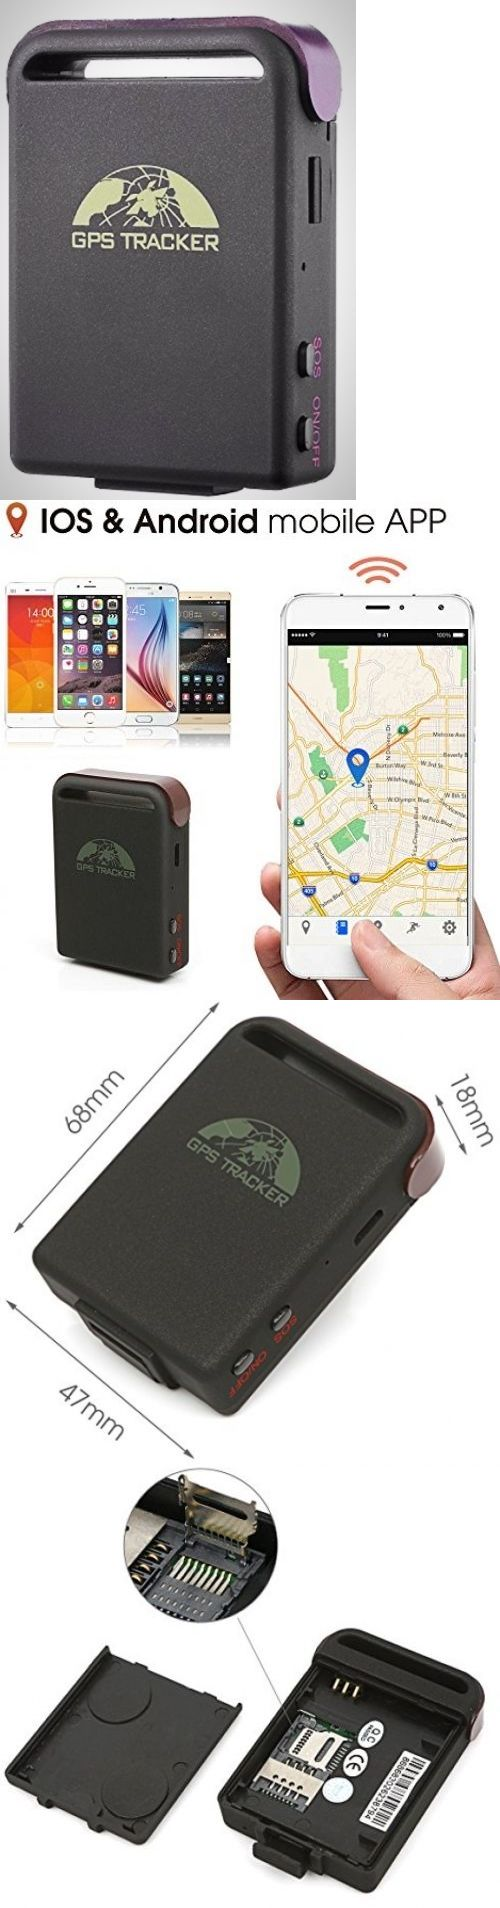 Tracking Devices: Mini Gps Tracker Quad Band Realtime Smallest Spy Car Mini Waterproof Tech New -> BUY IT NOW ONLY: $36.44 on eBay!